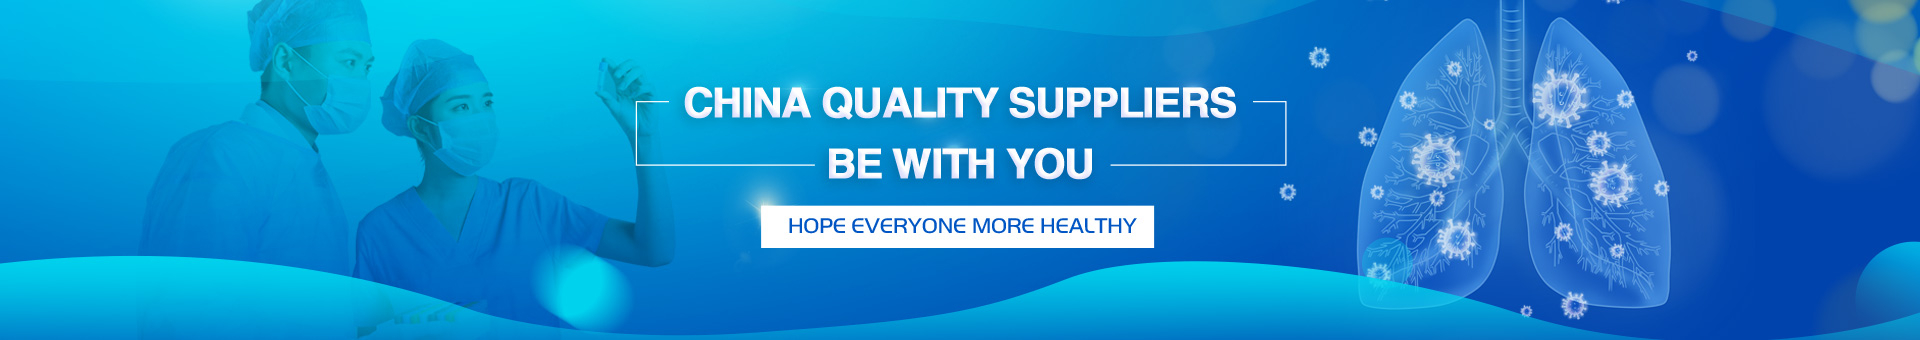 China Quality Suppliers be with You